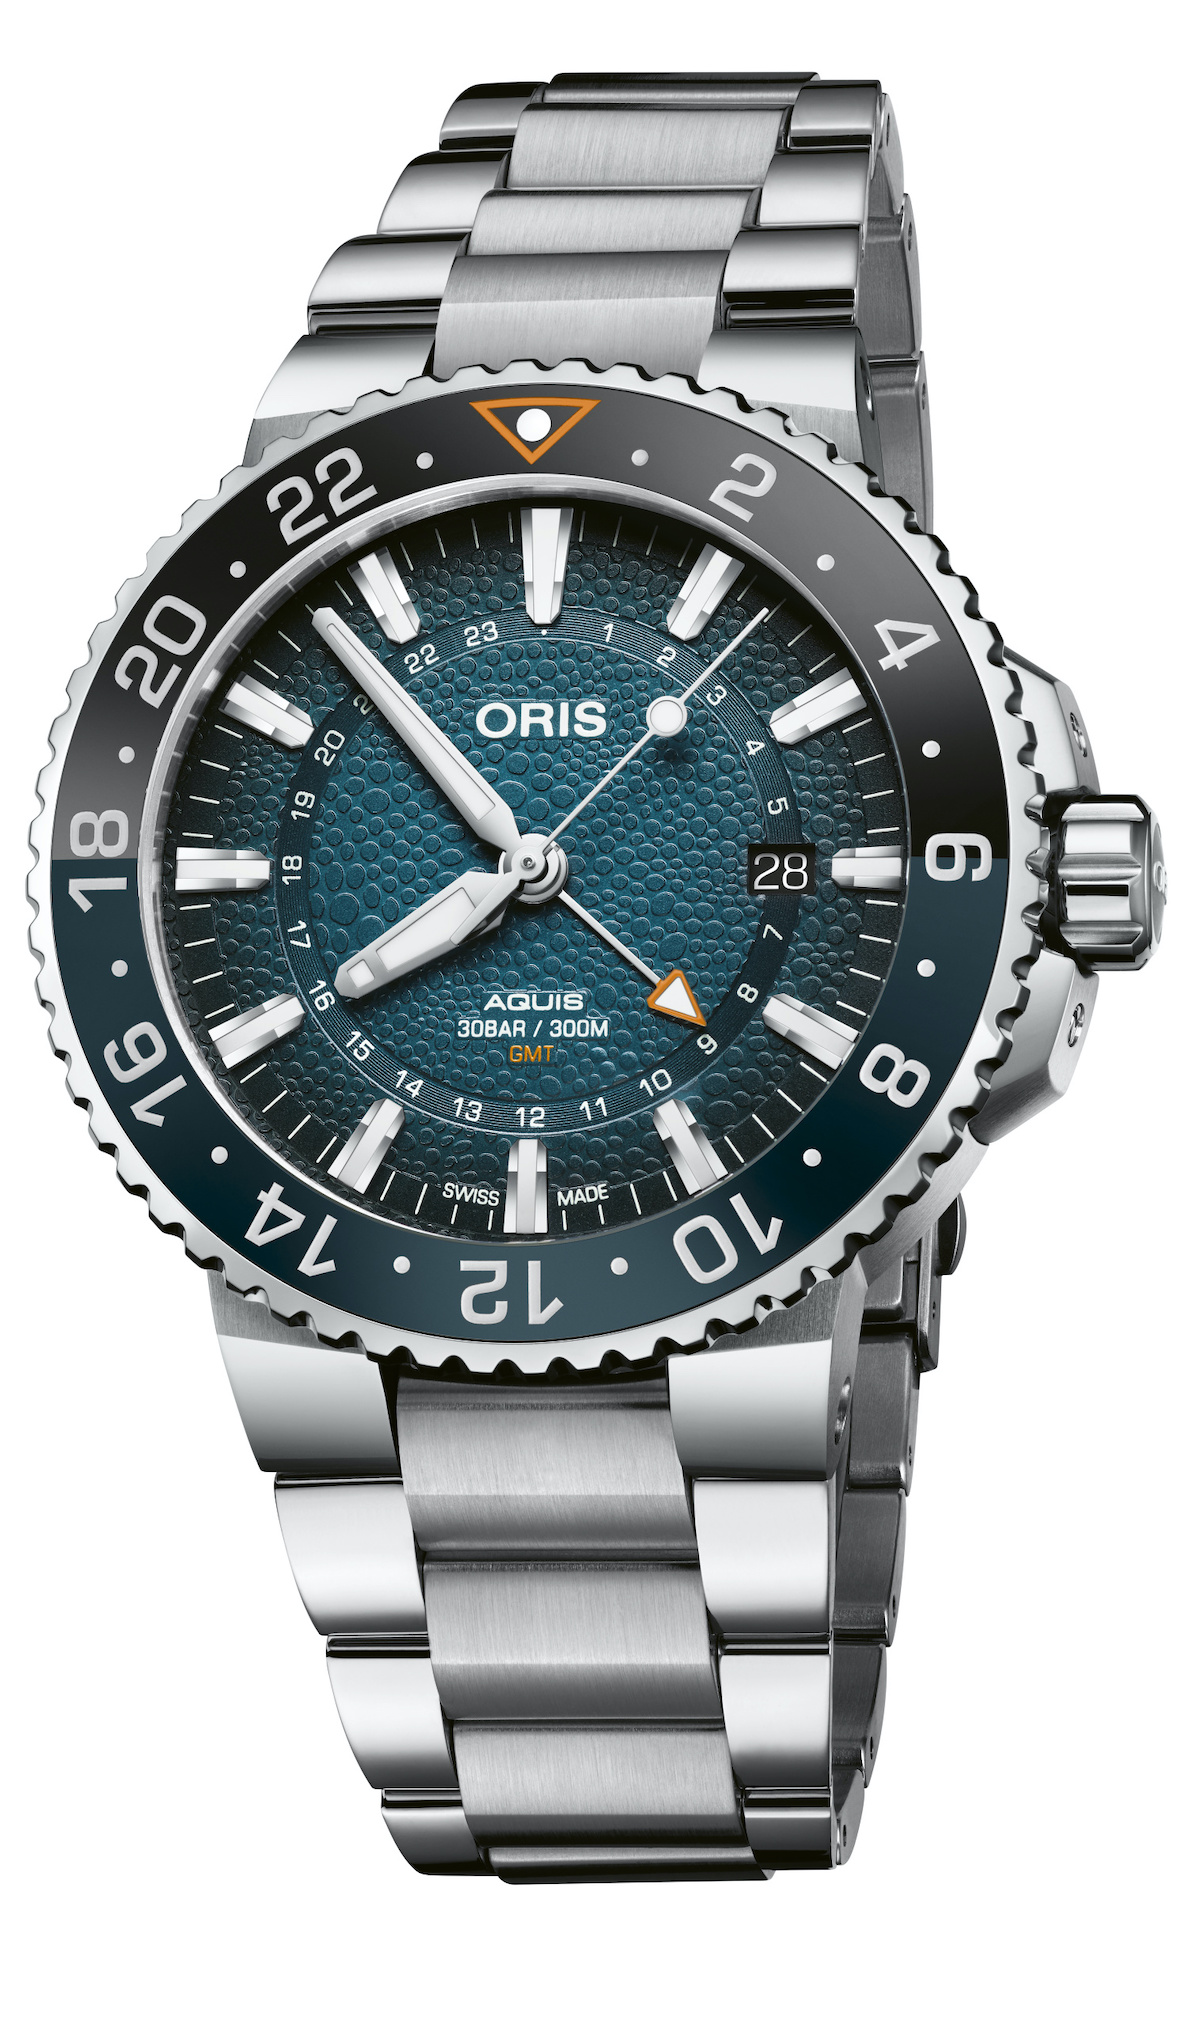 Oris Whale Shark Limited Edition watch